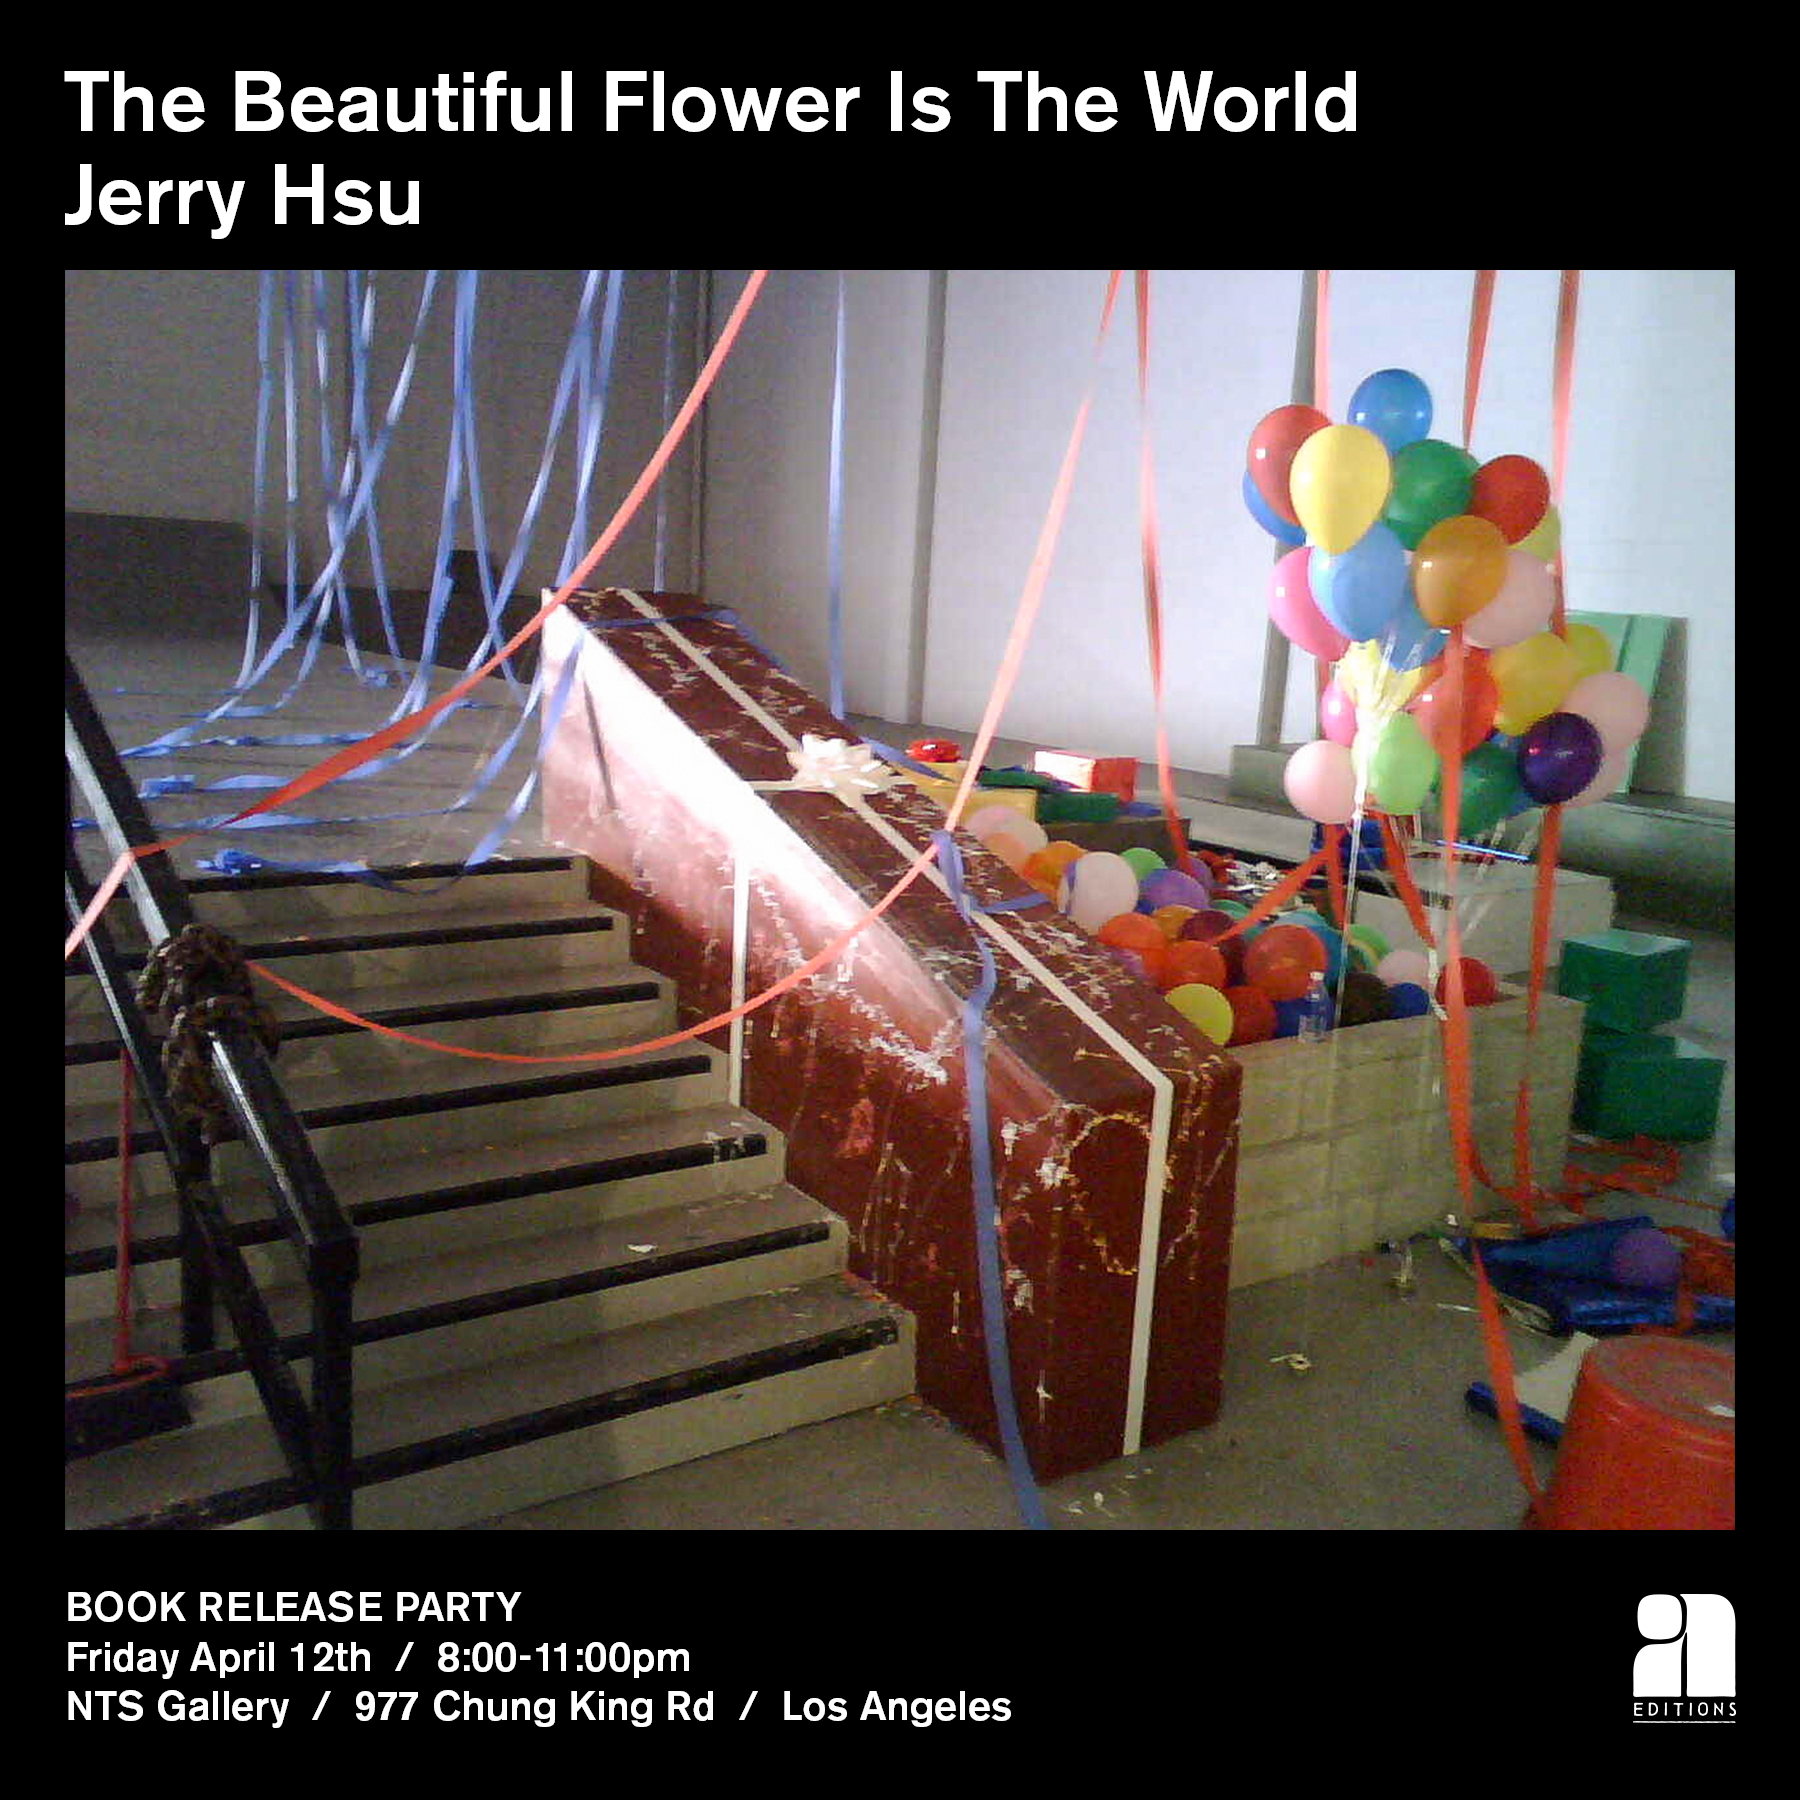 Jerry Hsu The Beautiful Flower Is The World NTS Gallery Release Party Poster